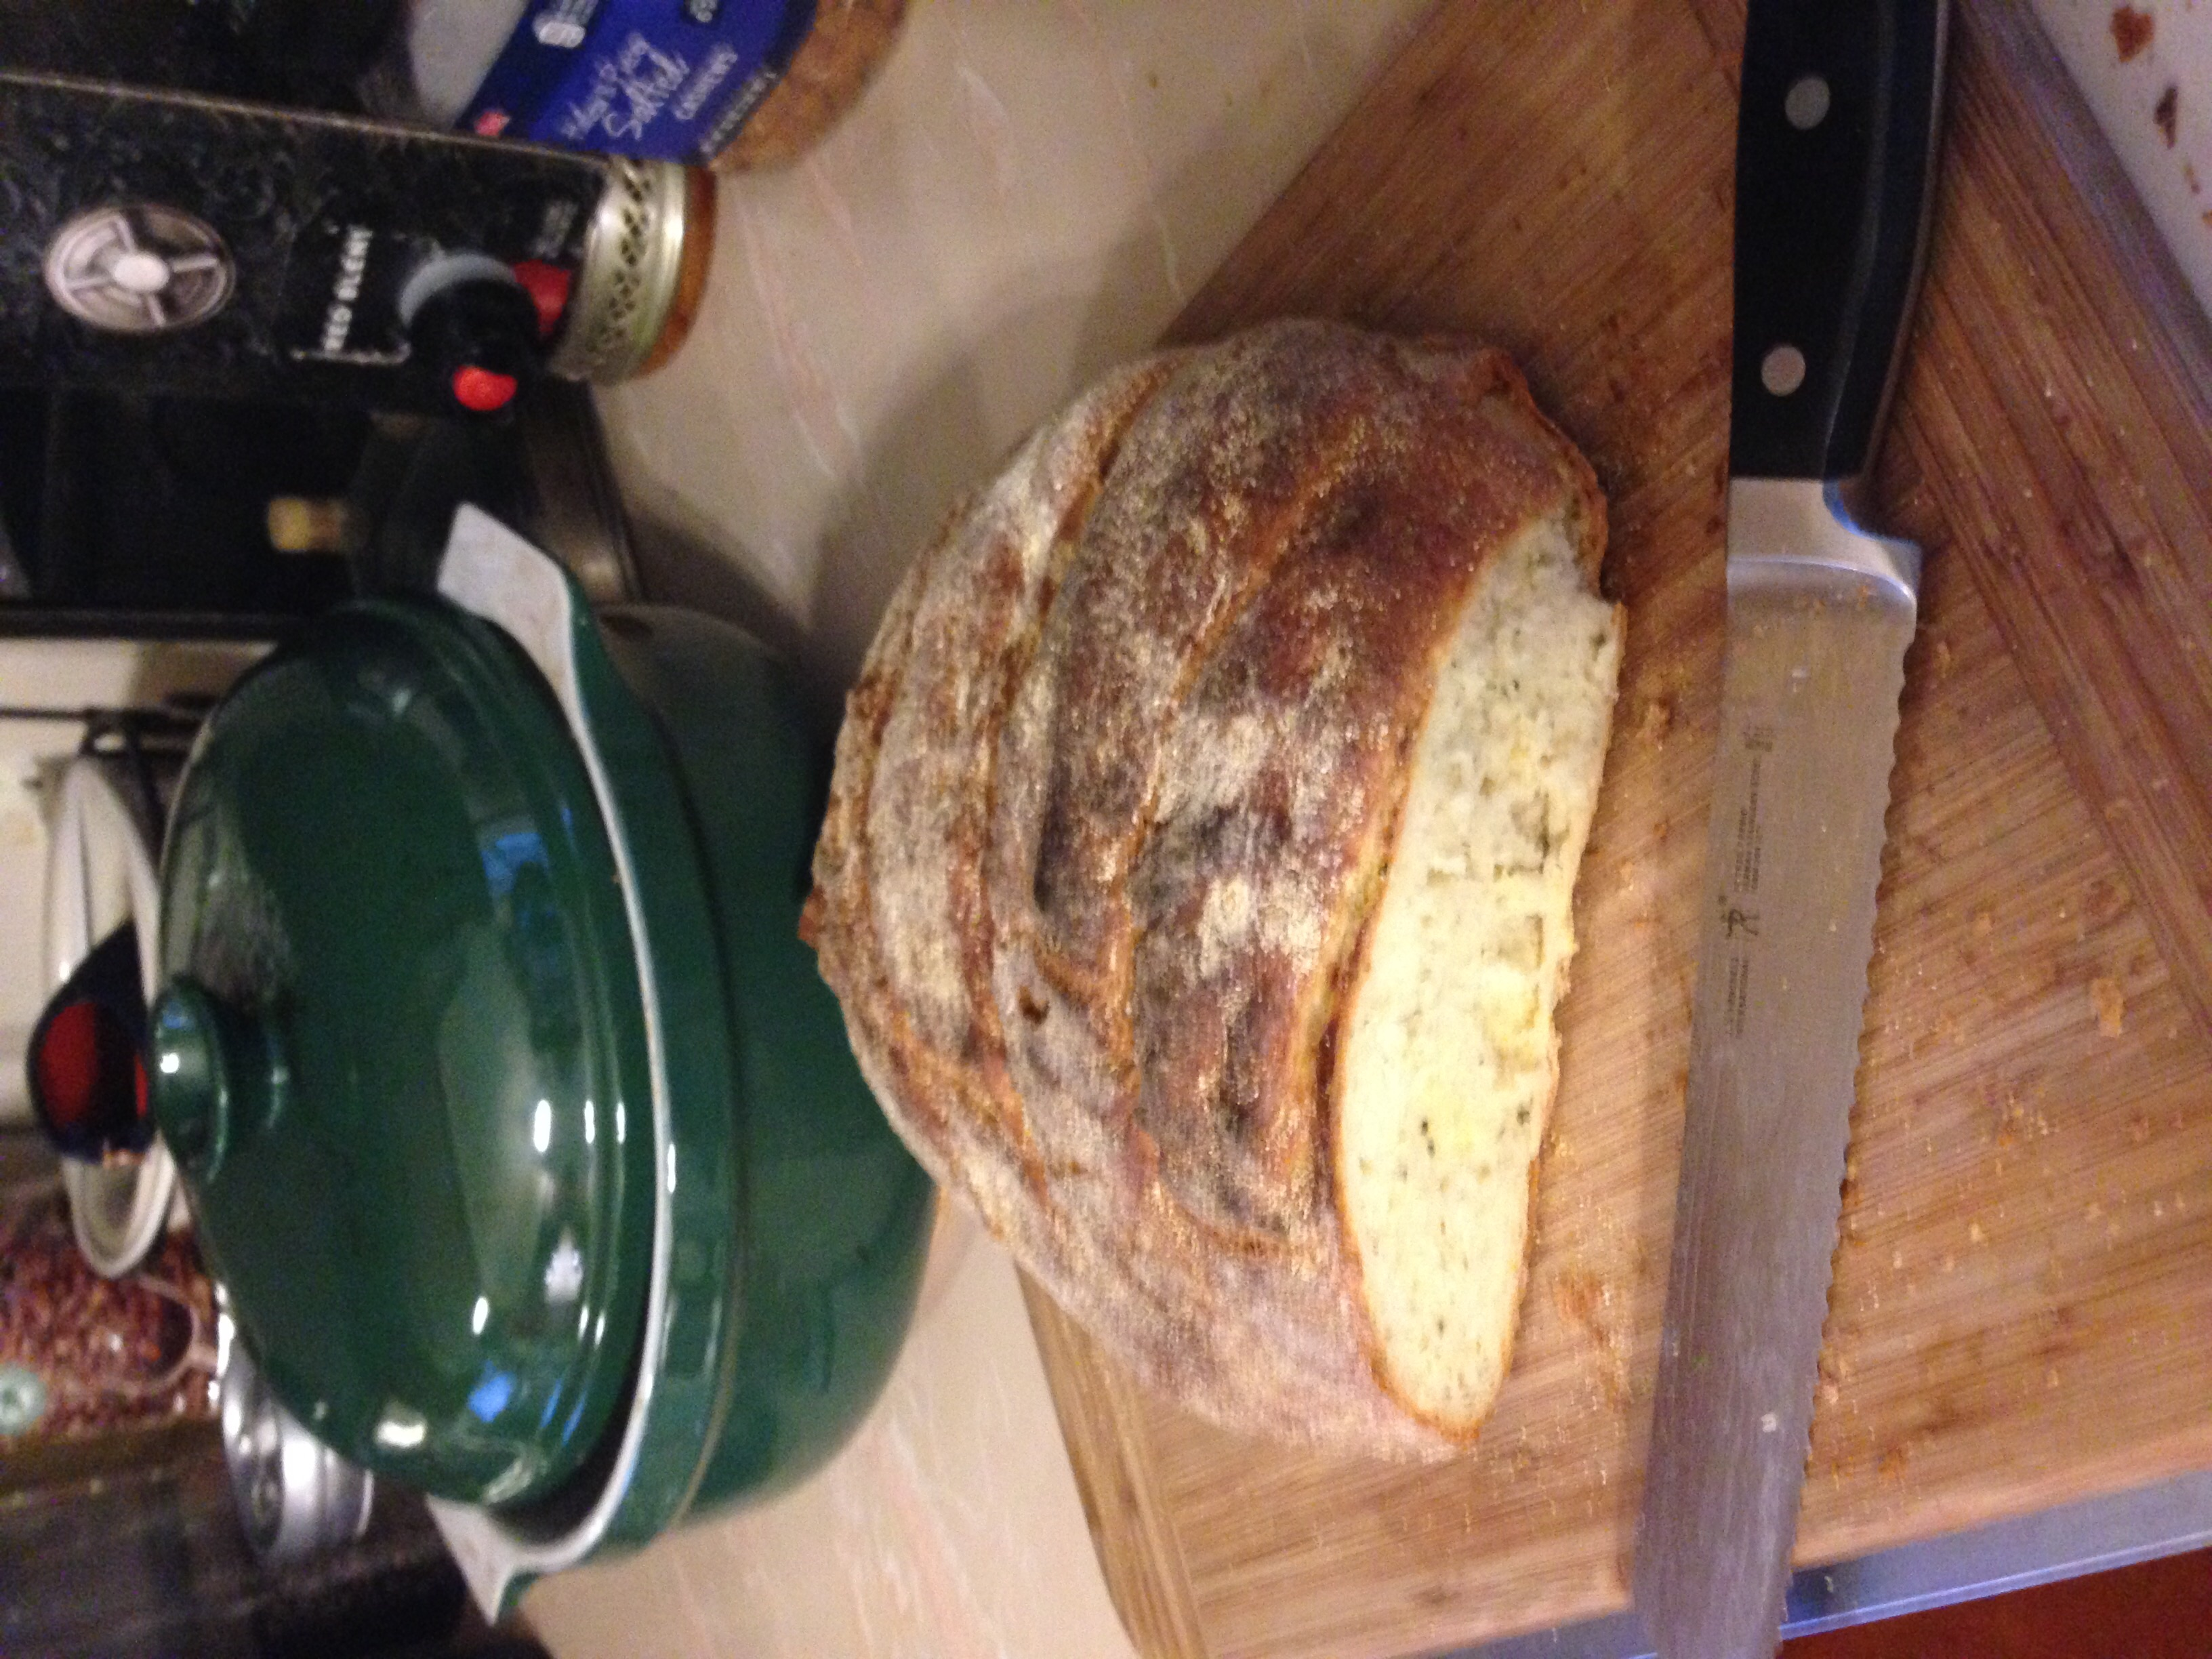 Rosemary Boule made with fresh rosemary from our garden. In the background is my Emile Henry ceramic Dutch oven, which makes a great crusty bread. I never knew a dutch oven could be used for bread making.